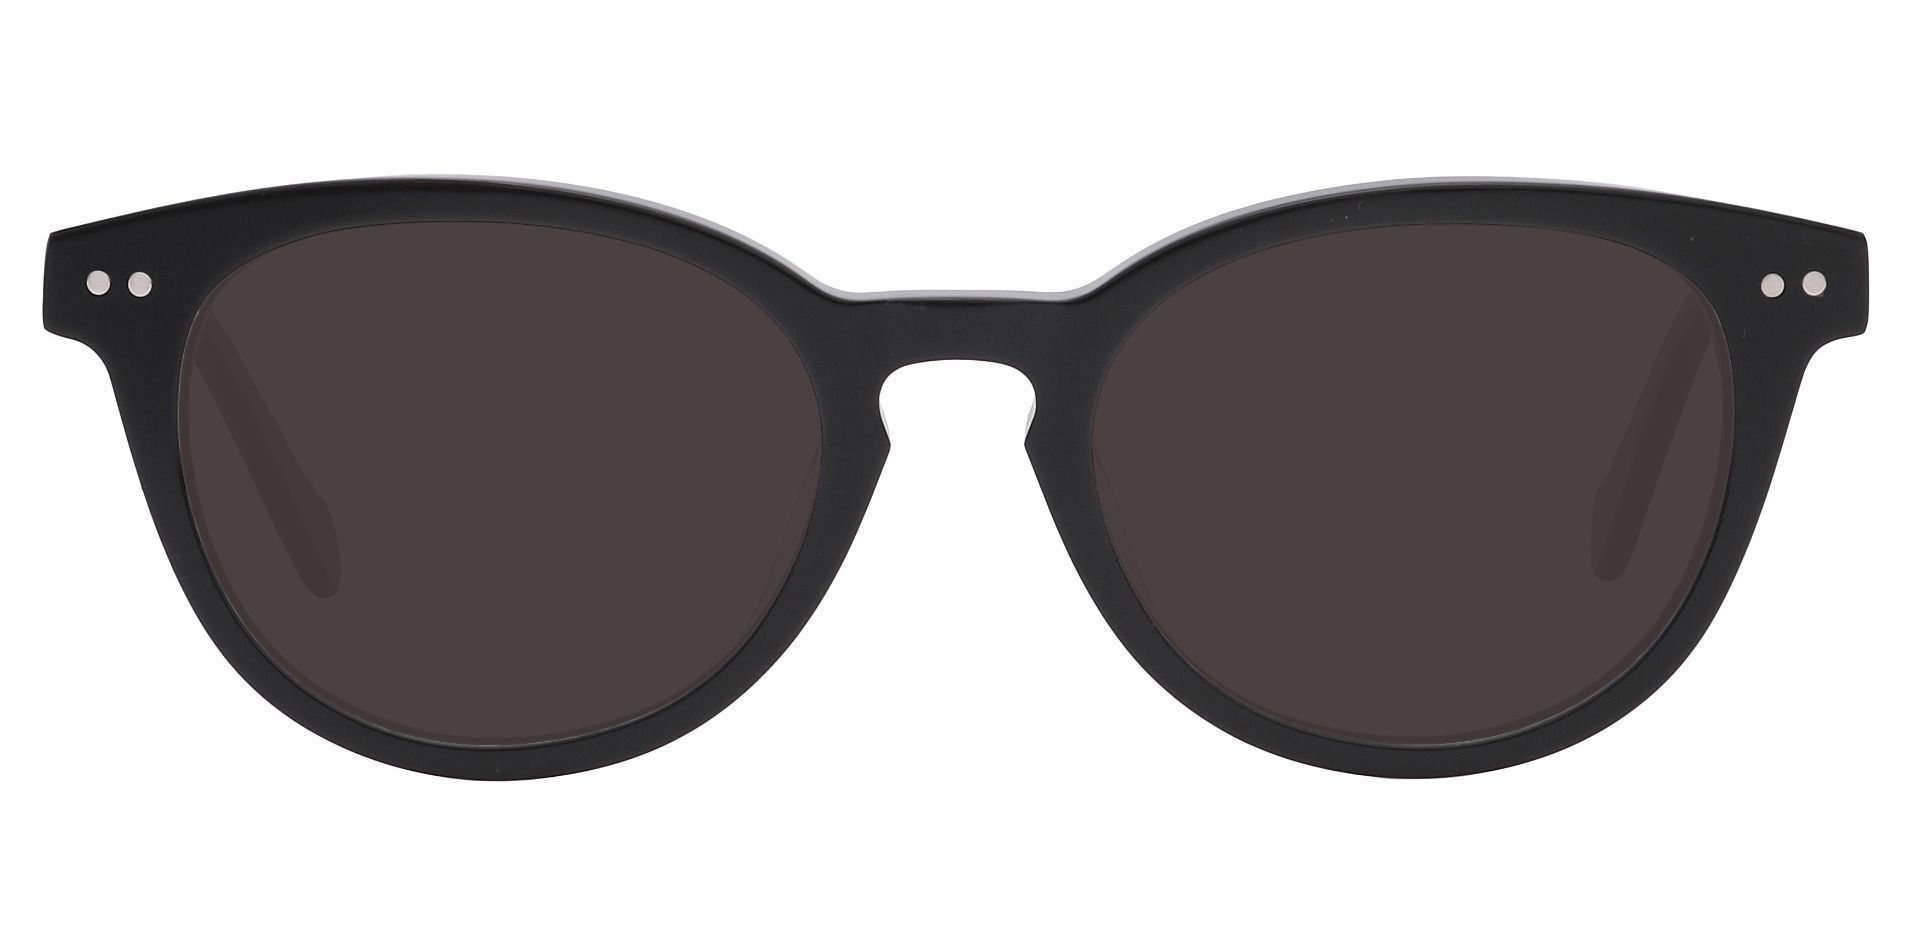 Forbes Oval Lined Bifocal Sunglasses - Black Frame With Gray Lenses